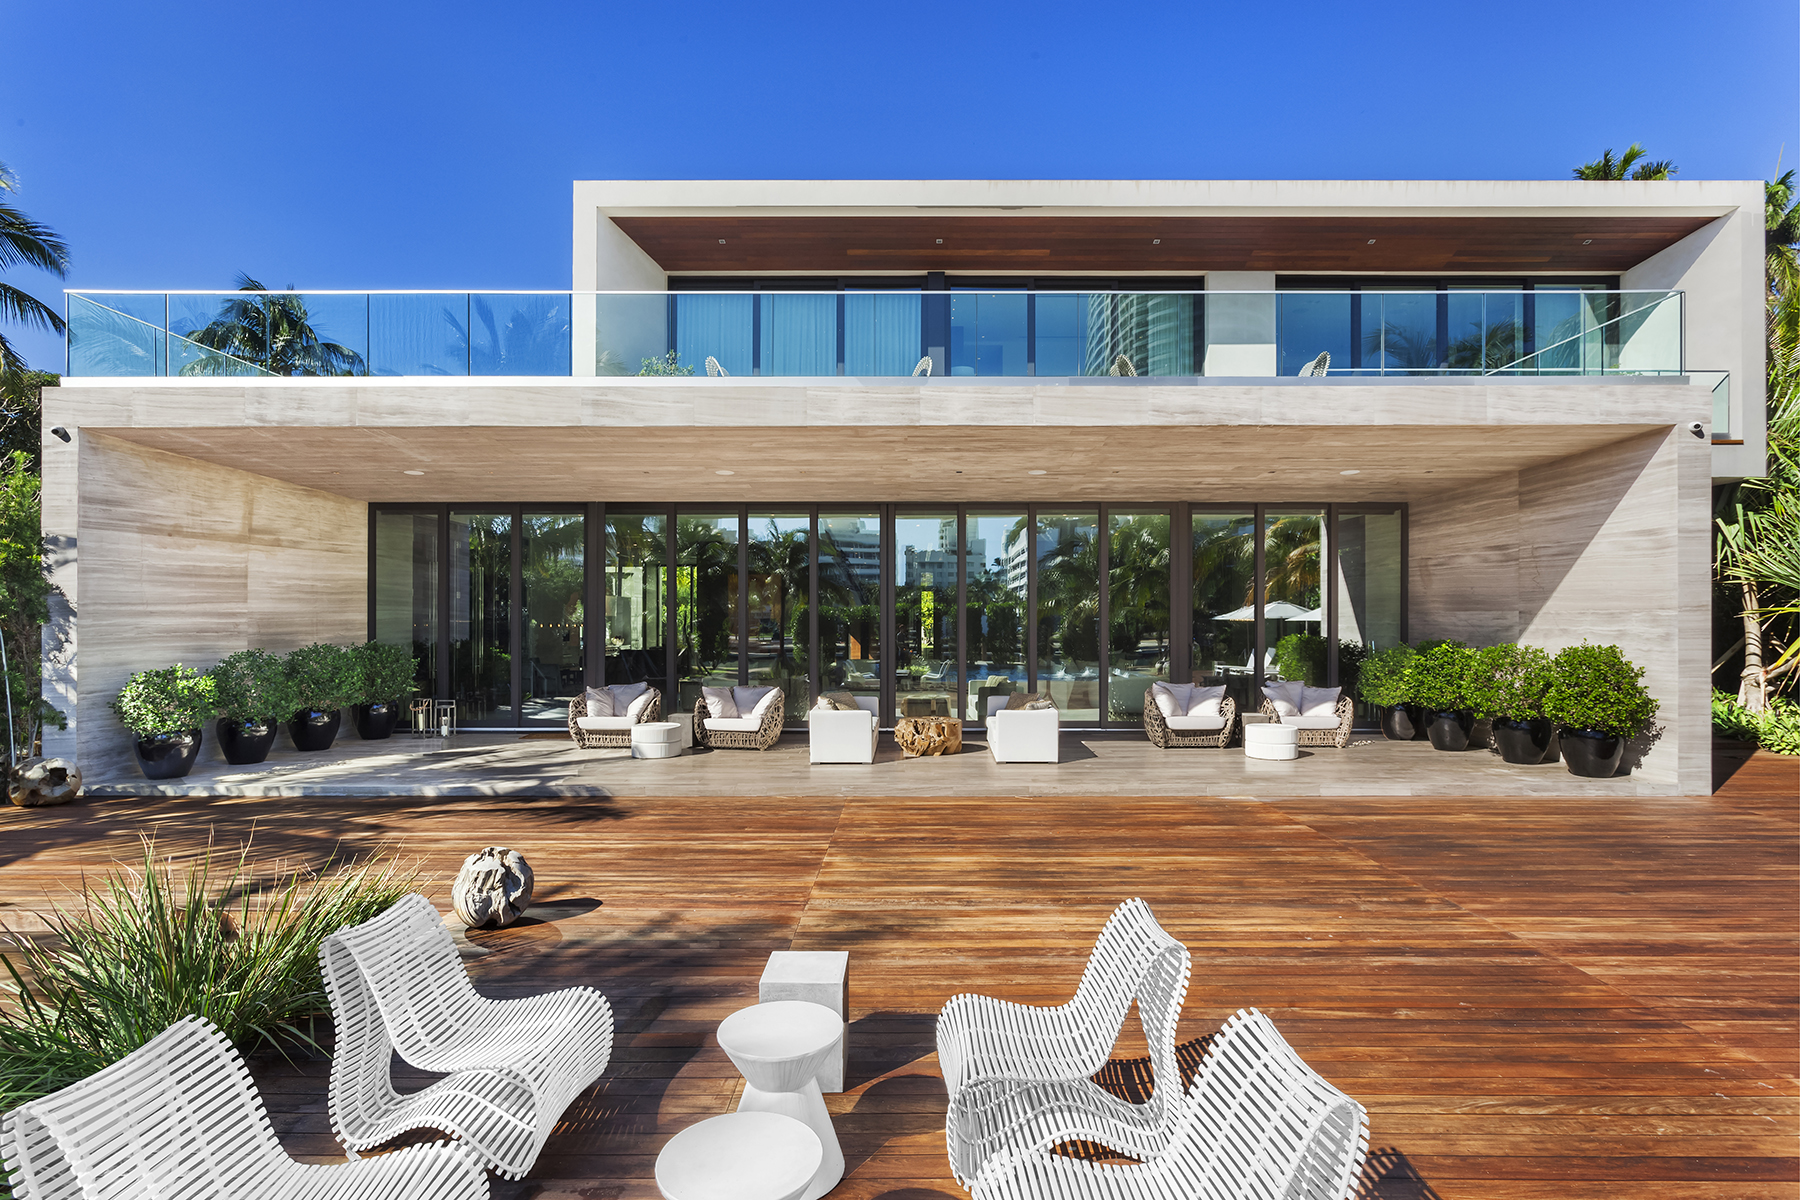 7 Foot Kitchen Island Beautiful Miami Beach Contemporary Asks $23m - Curbed Miami